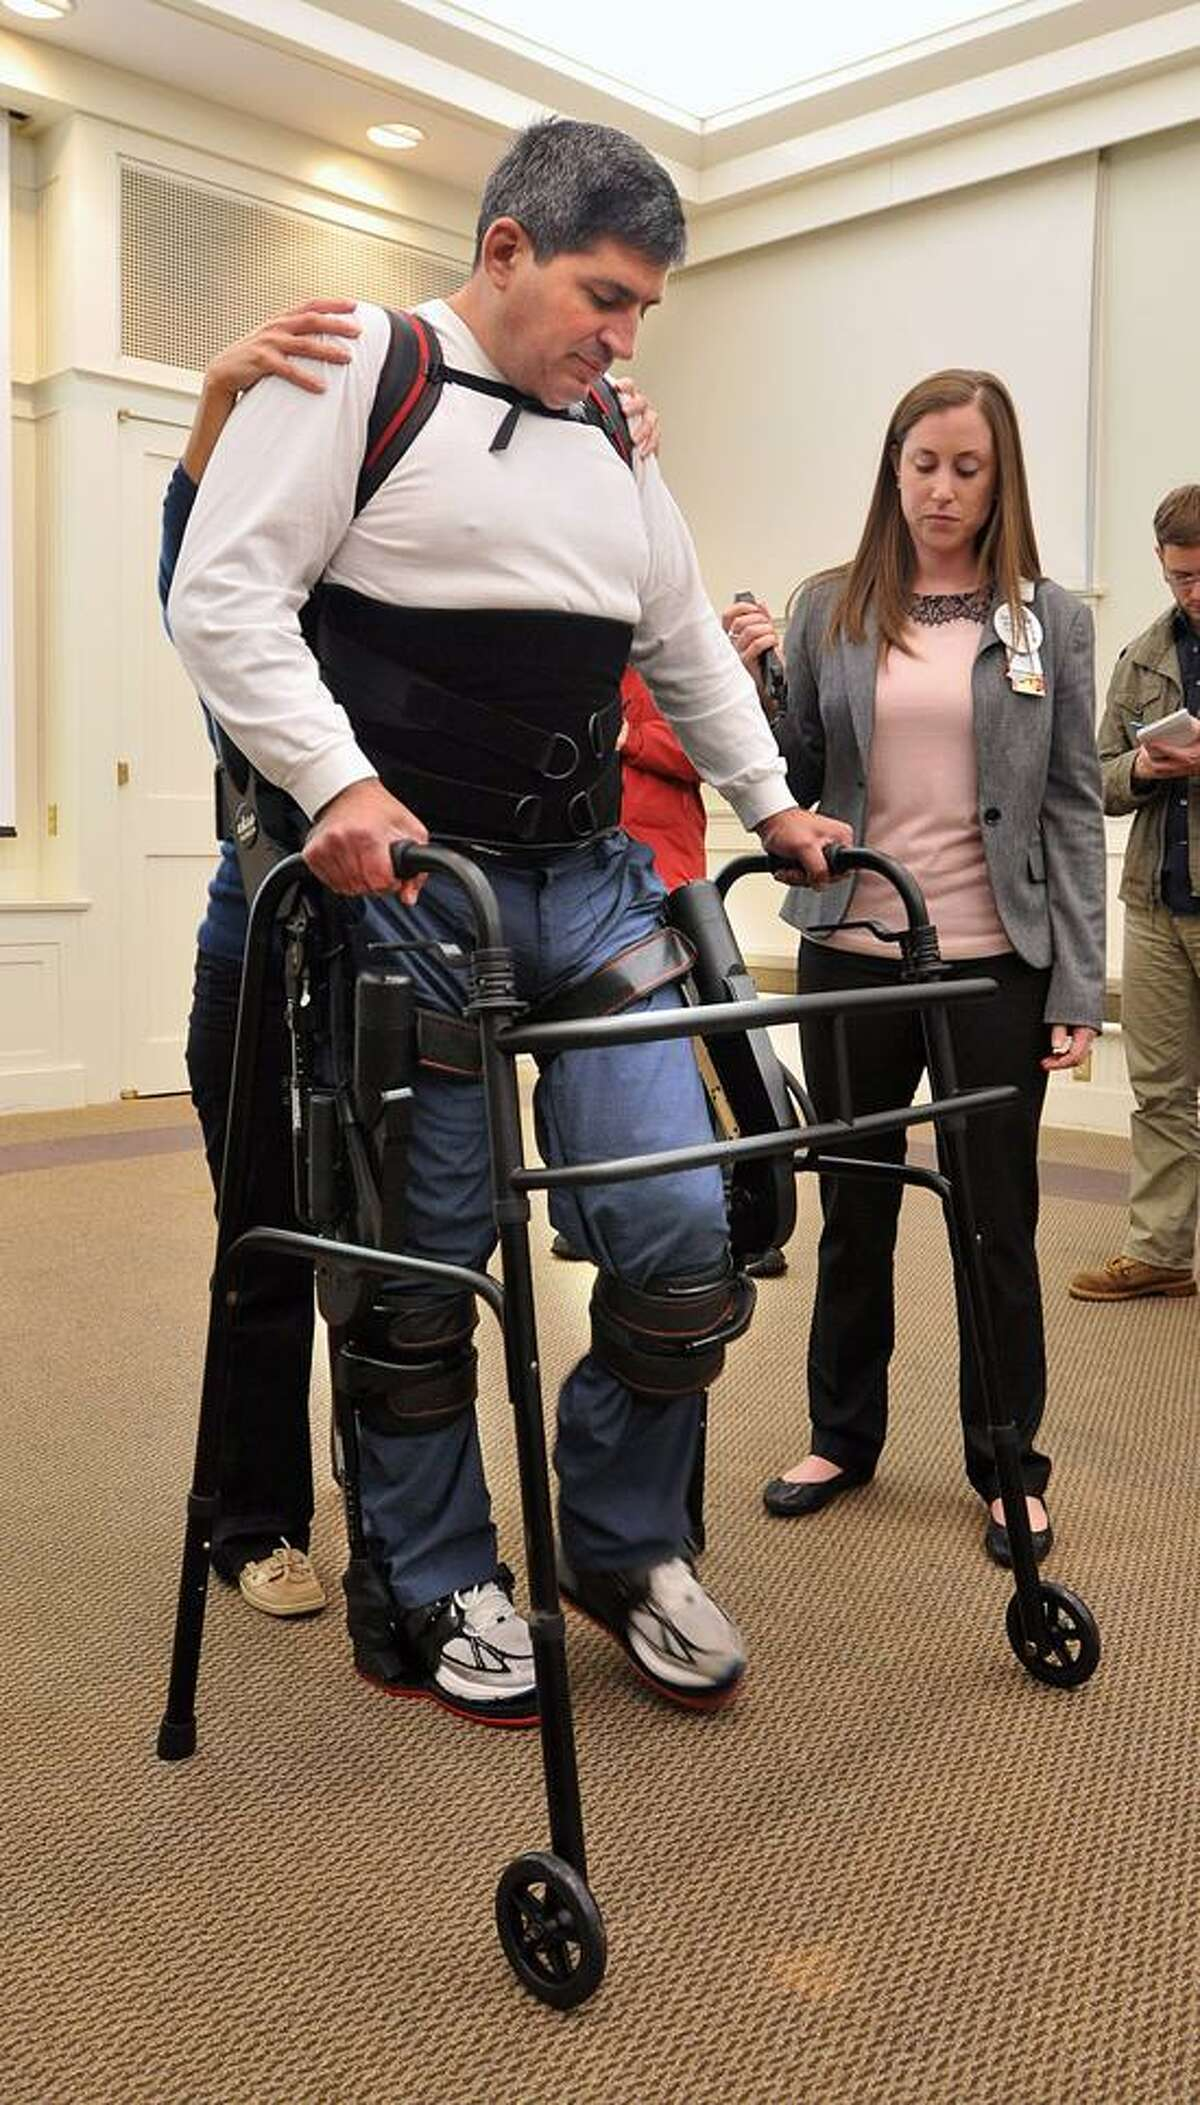 Michael Loura, a patient at Gaylord Hospital, uses a EKSO wearable robotic exoskeleton to